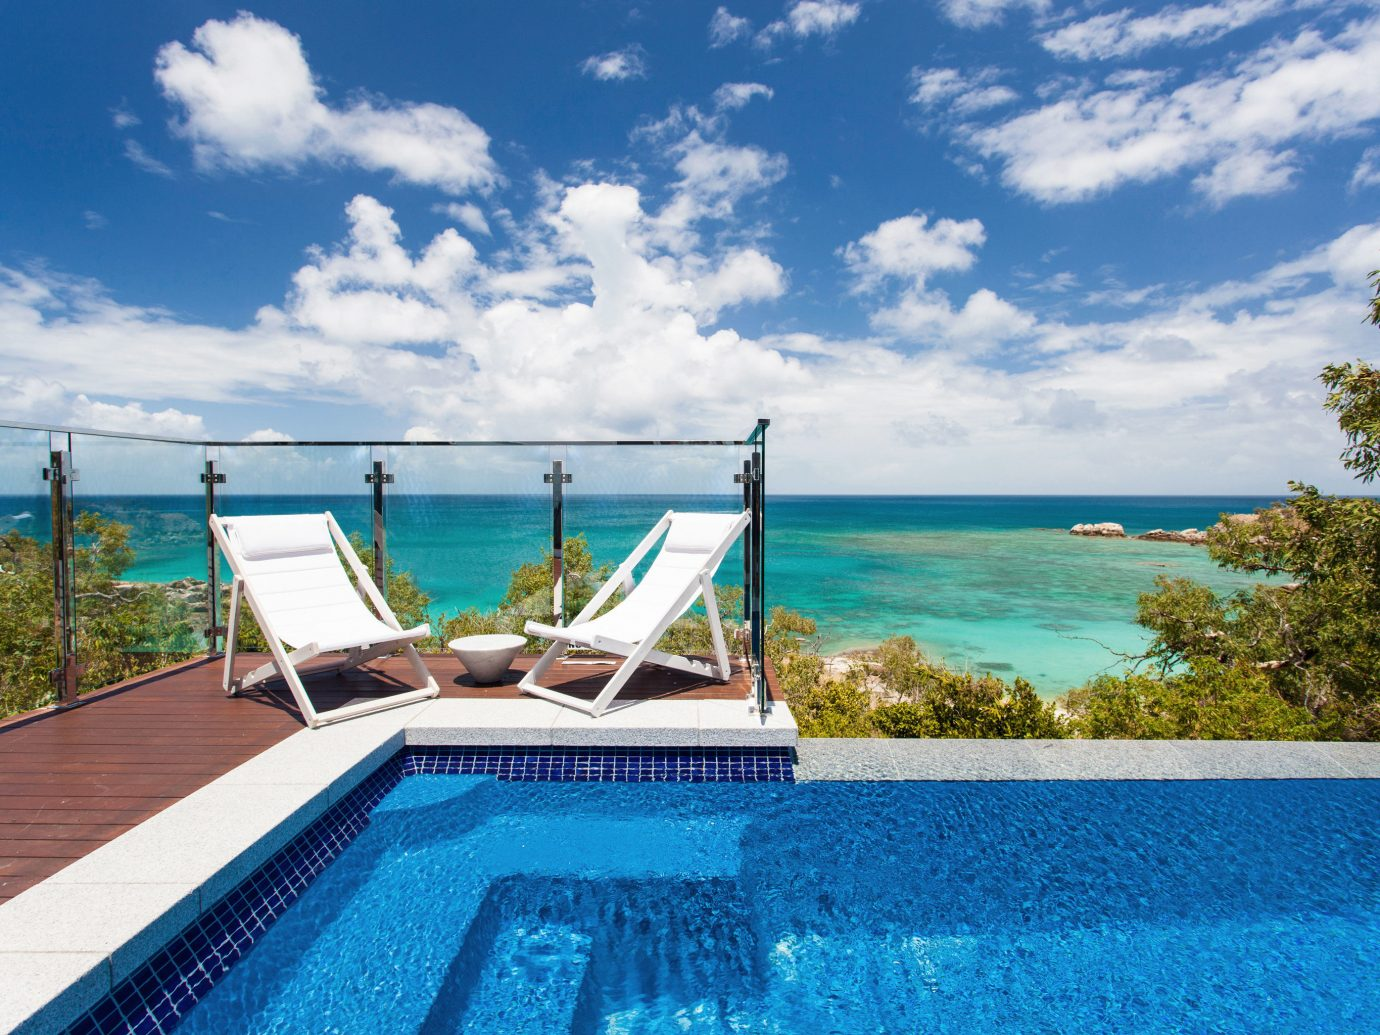 Trip Ideas sky water swimming pool property leisure caribbean Sea Ocean Resort Villa Lagoon blue day